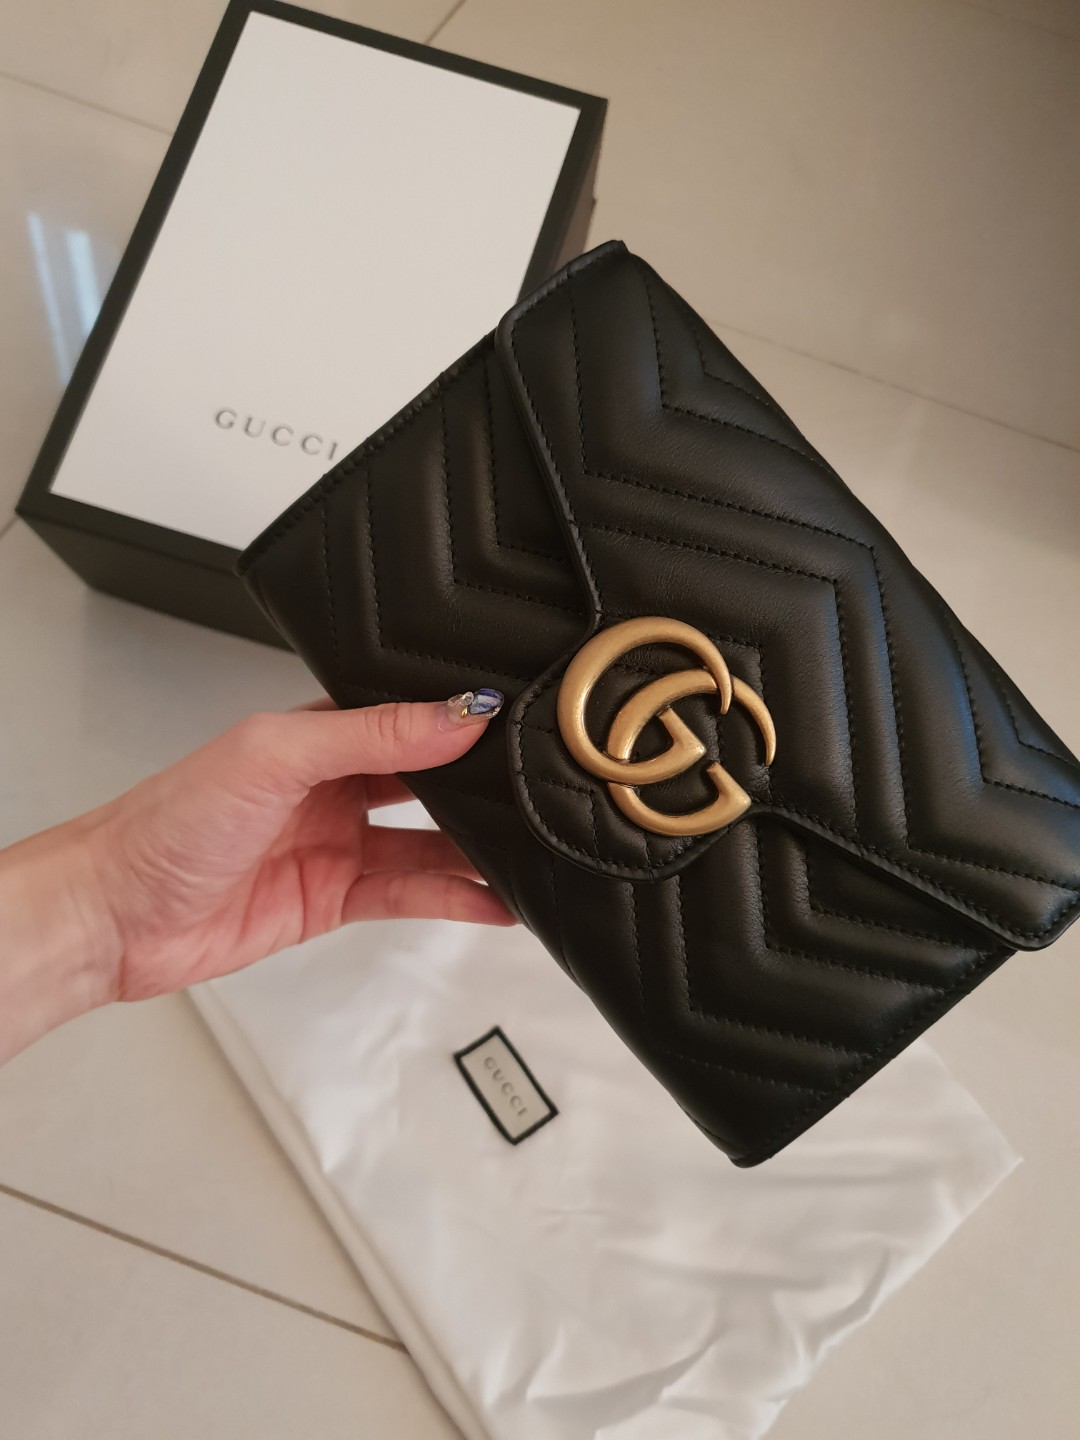 bdf71fd48 Gucci wallet on chain, Luxury, Bags & Wallets, Sling Bags on Carousell